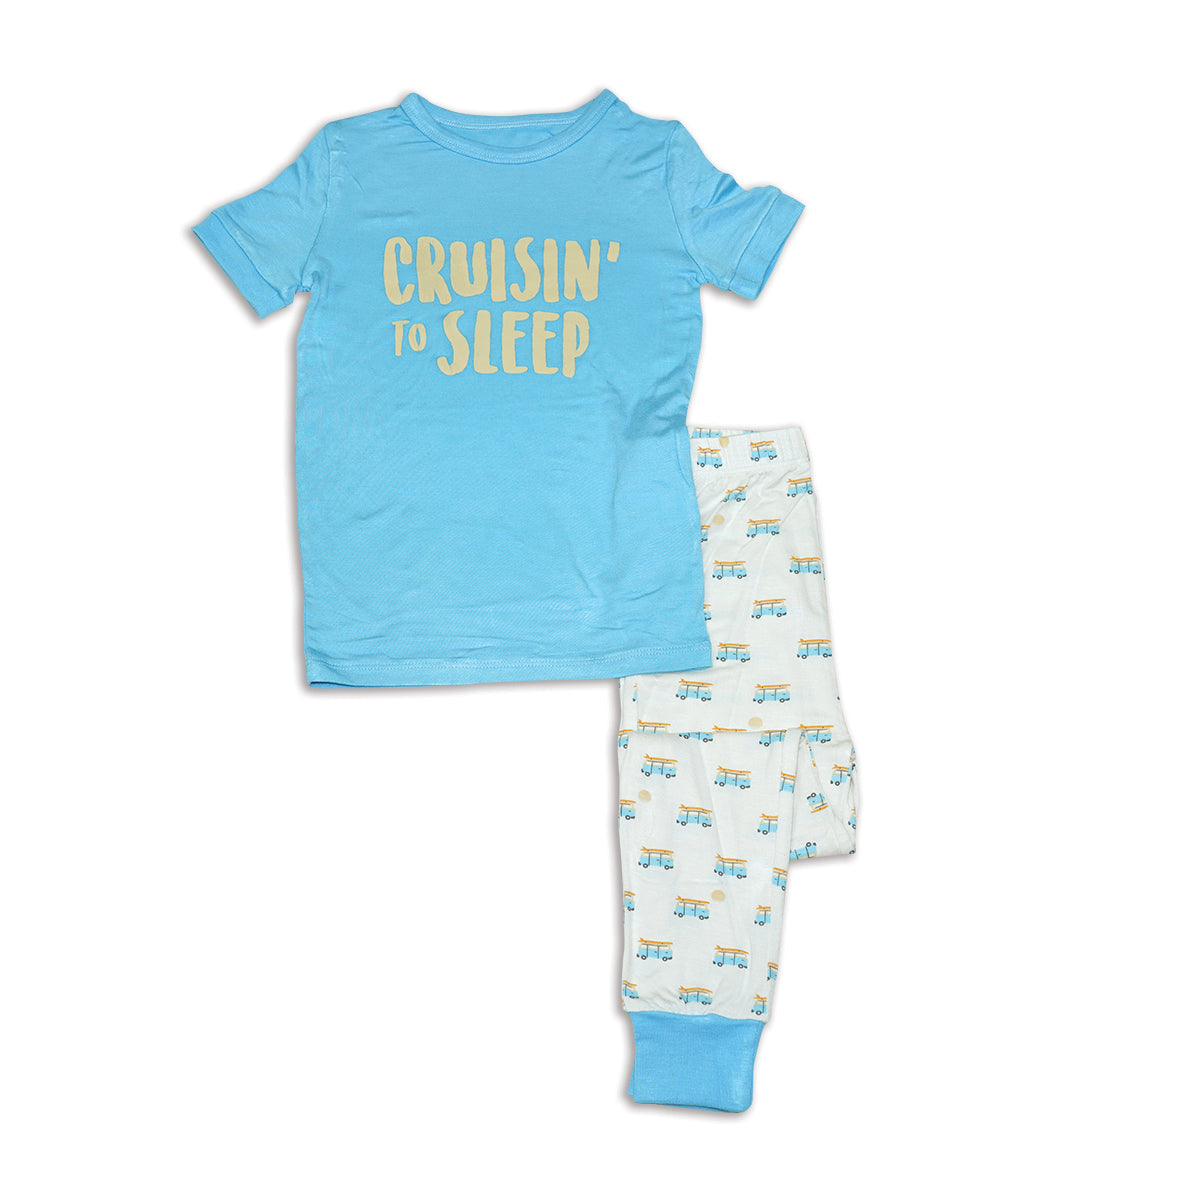 Bamboo Short Sleeve Pajama Set (Surf/Sunset Cruising Print)